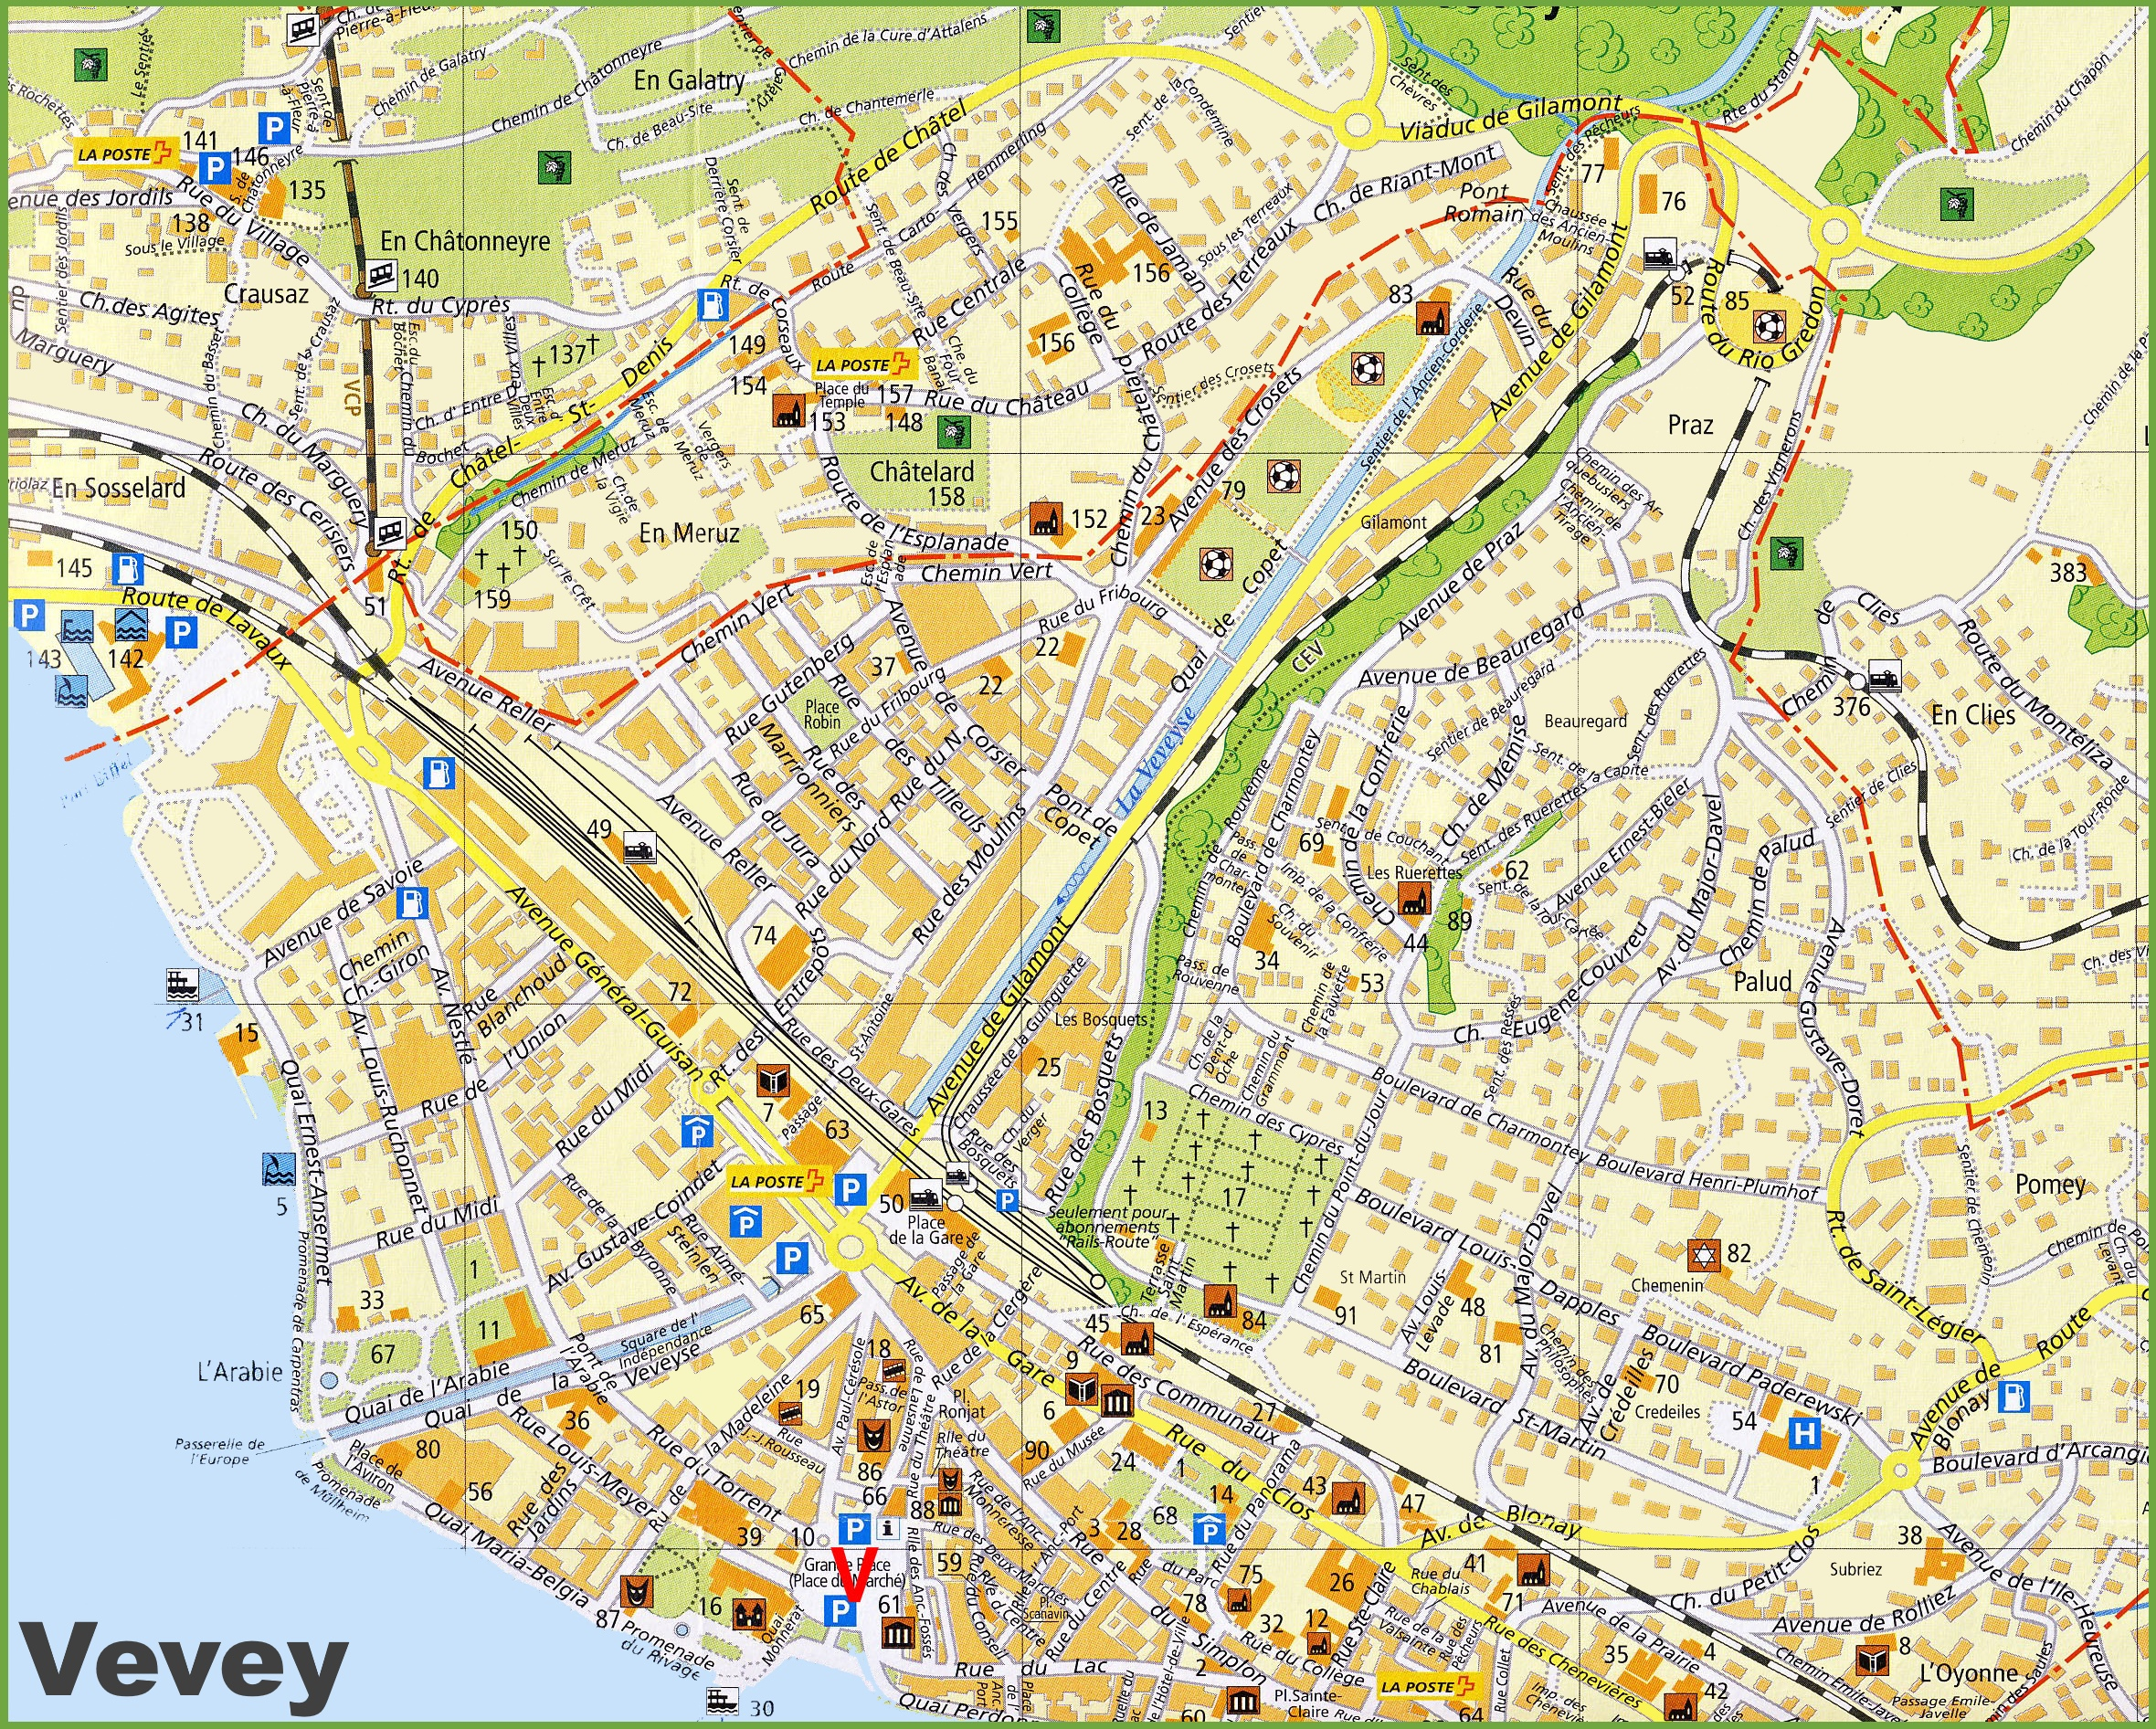 Vevey tourist map